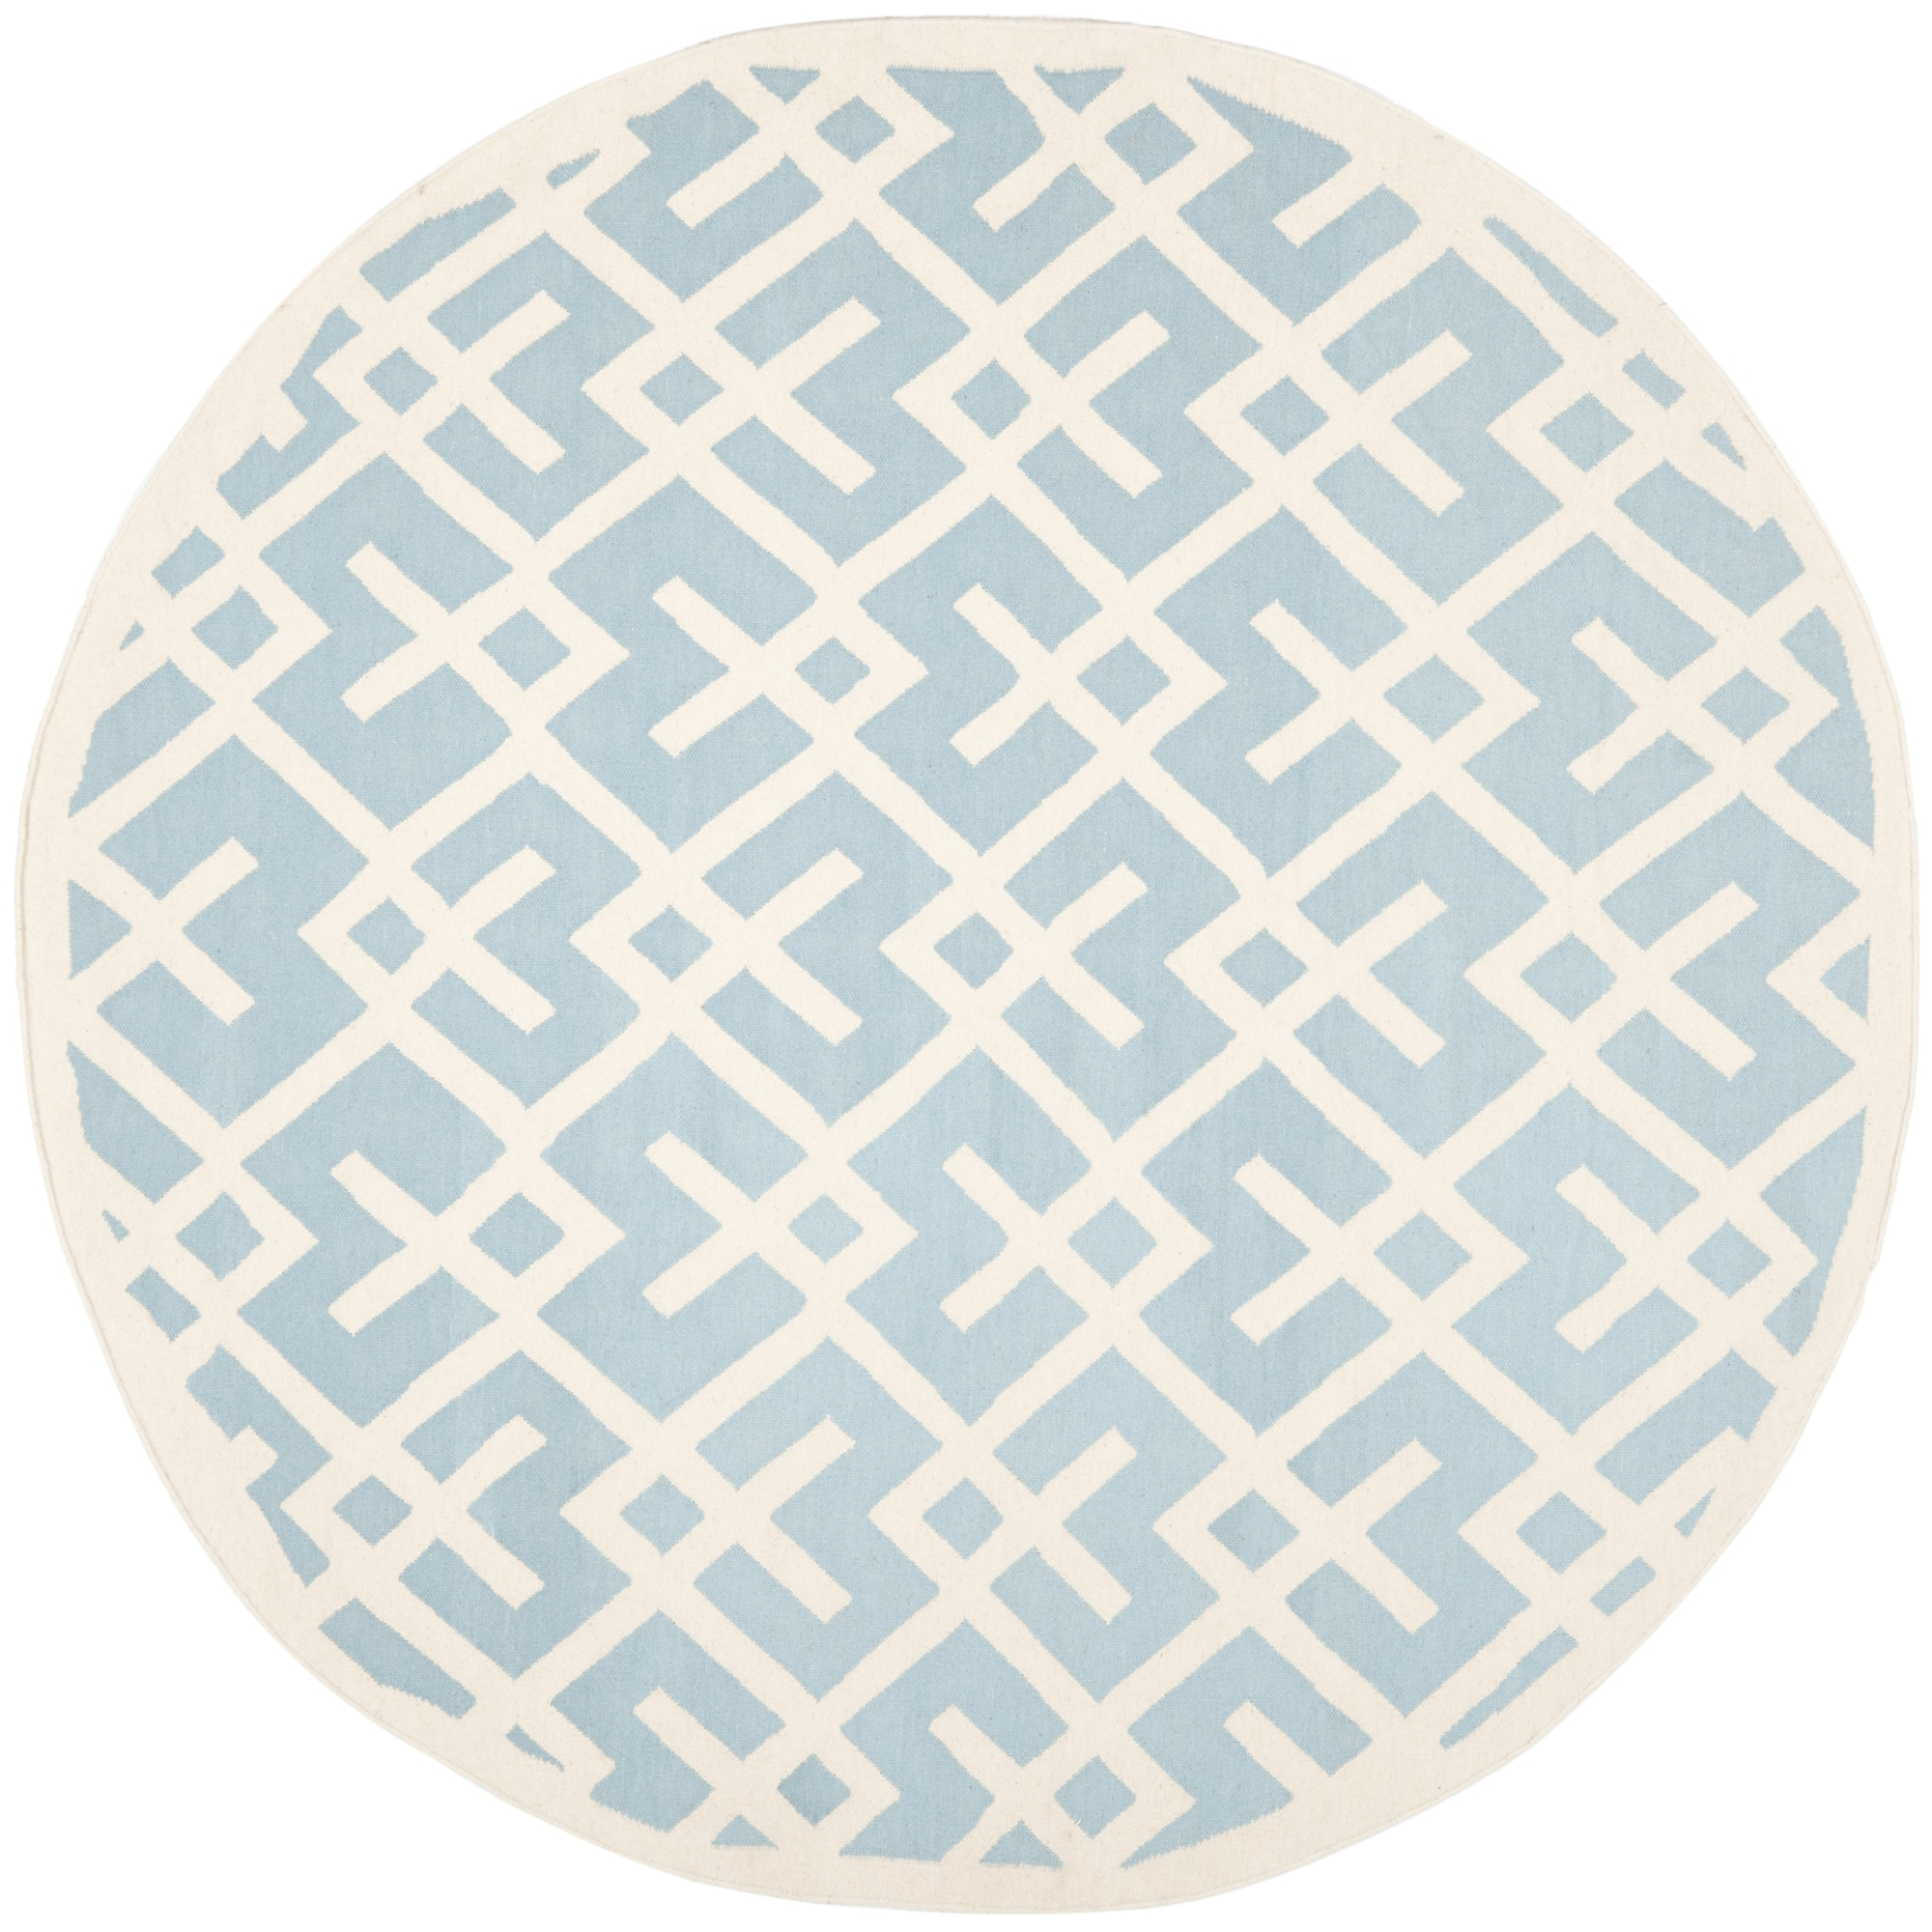 Safavieh Moroccan Light Blue/ Ivory Reversible Dhurrie Wo...